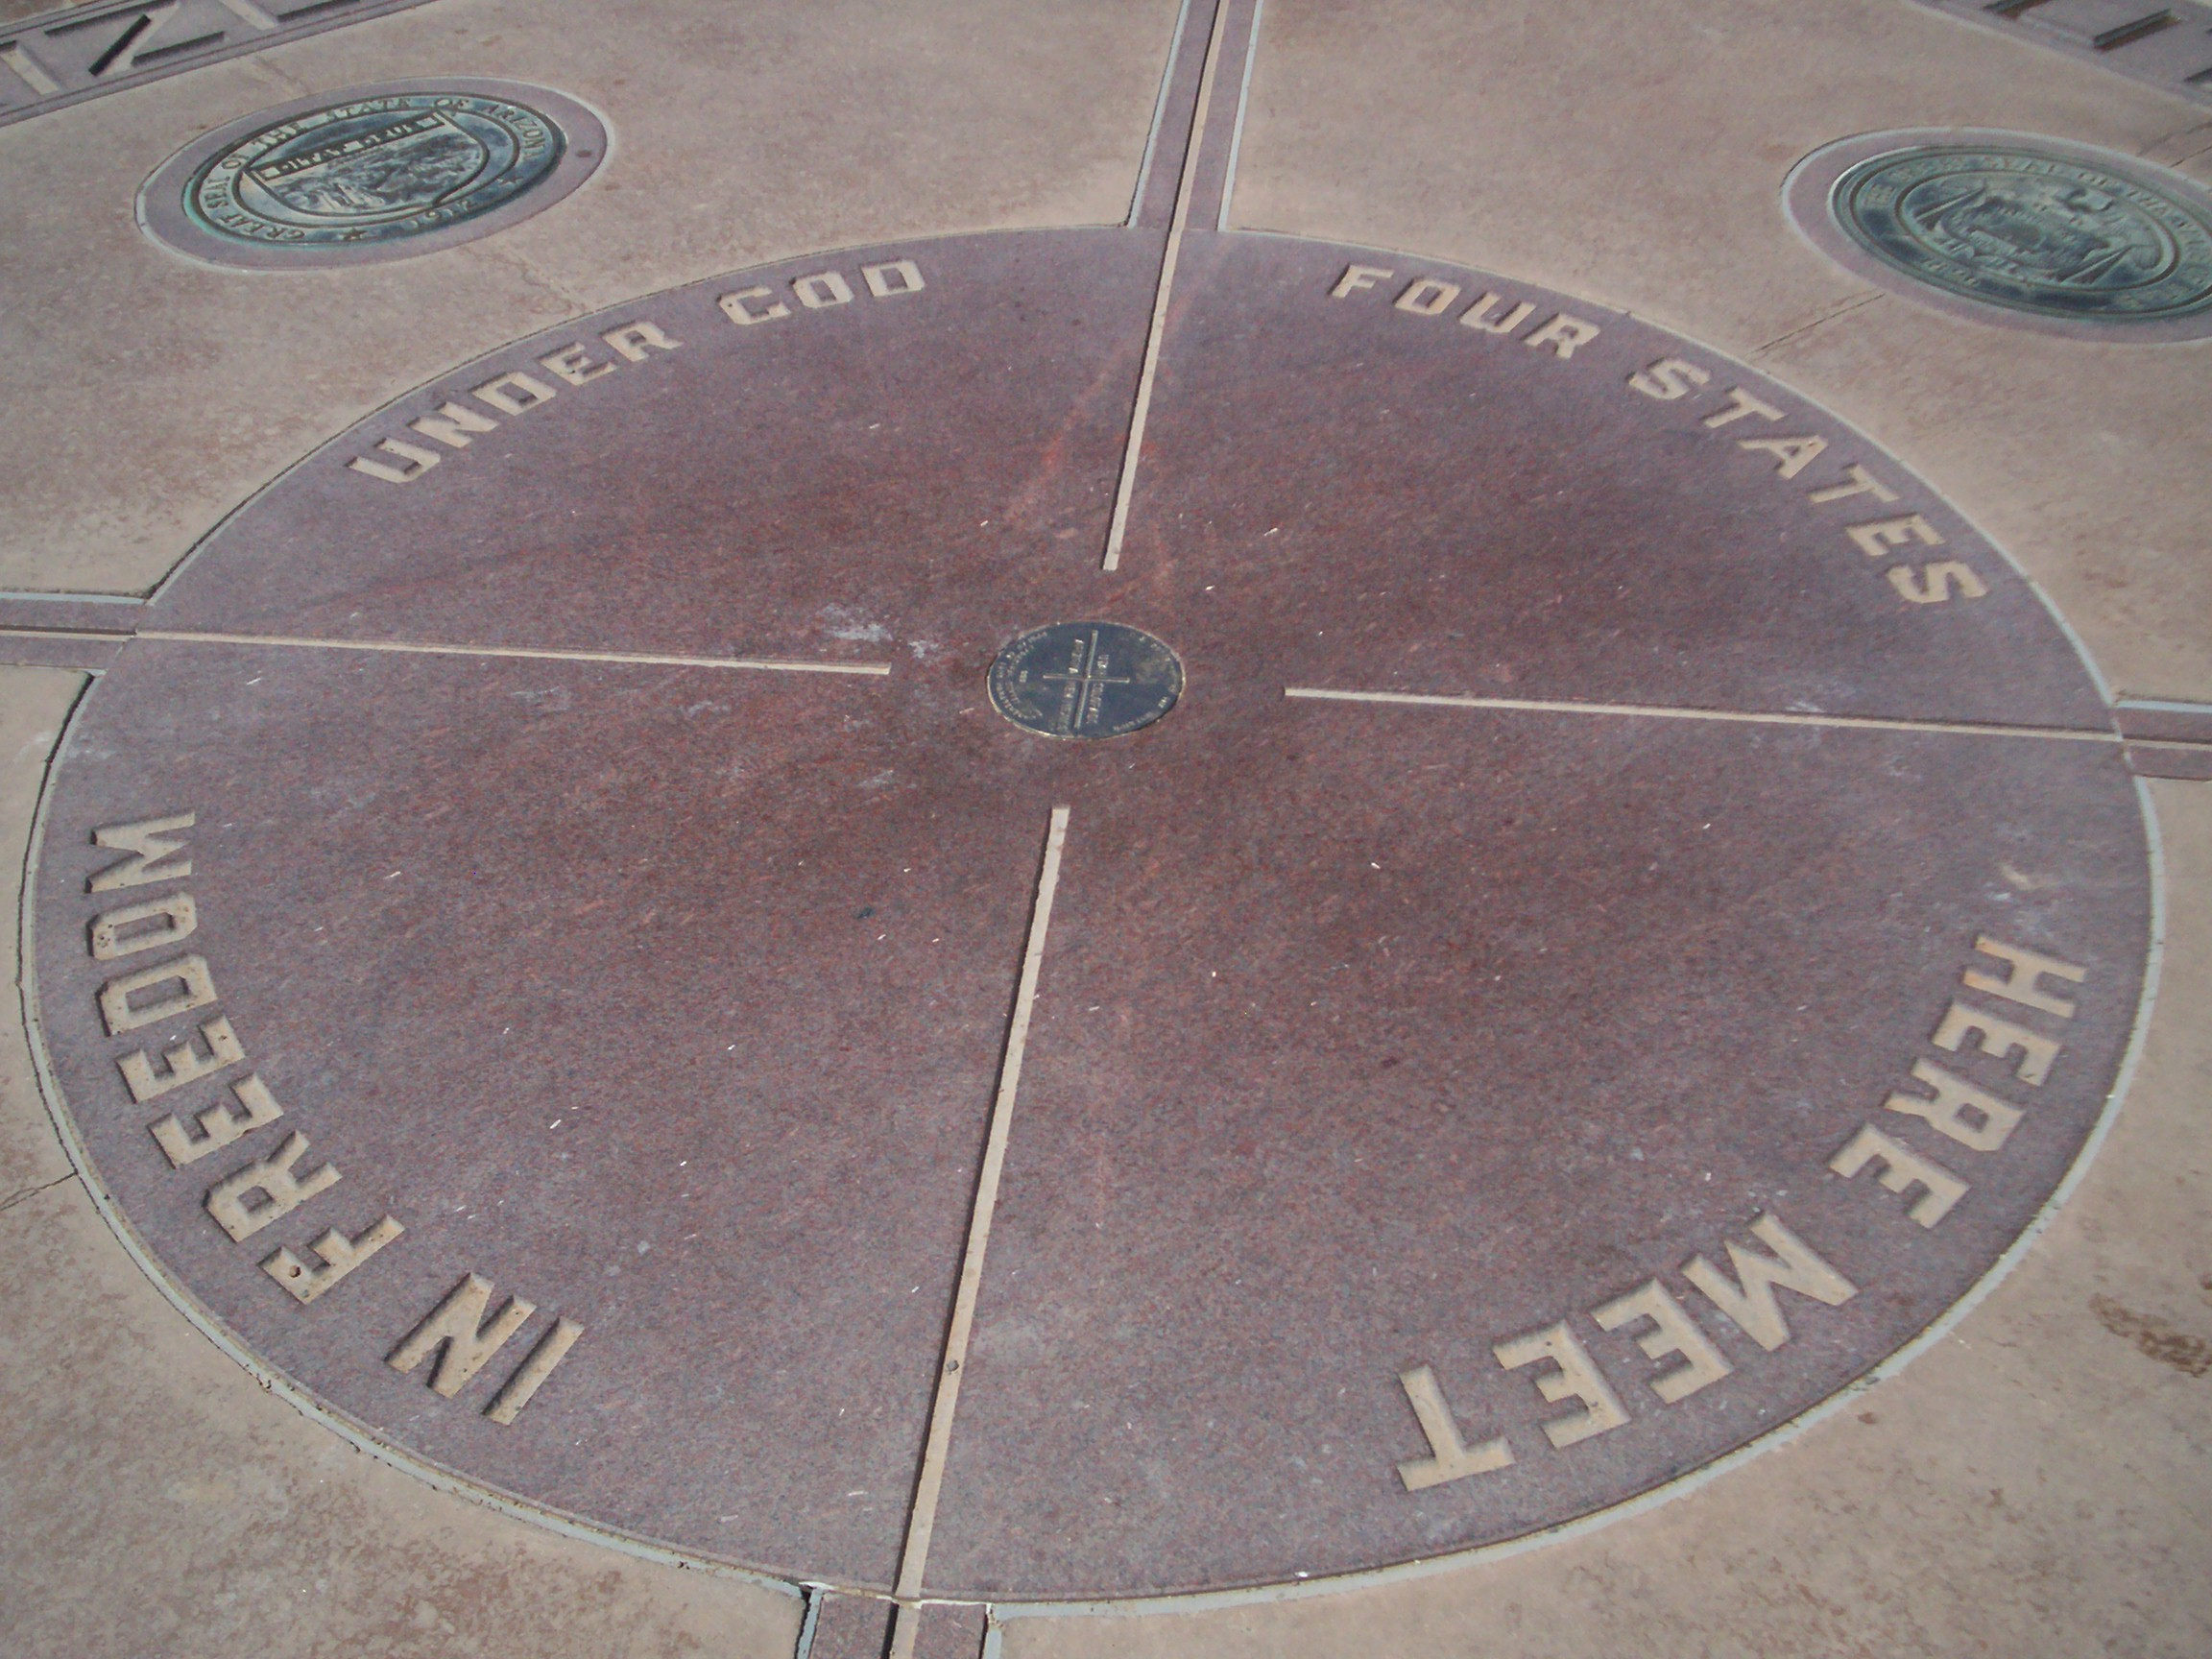 four corners - photo #8